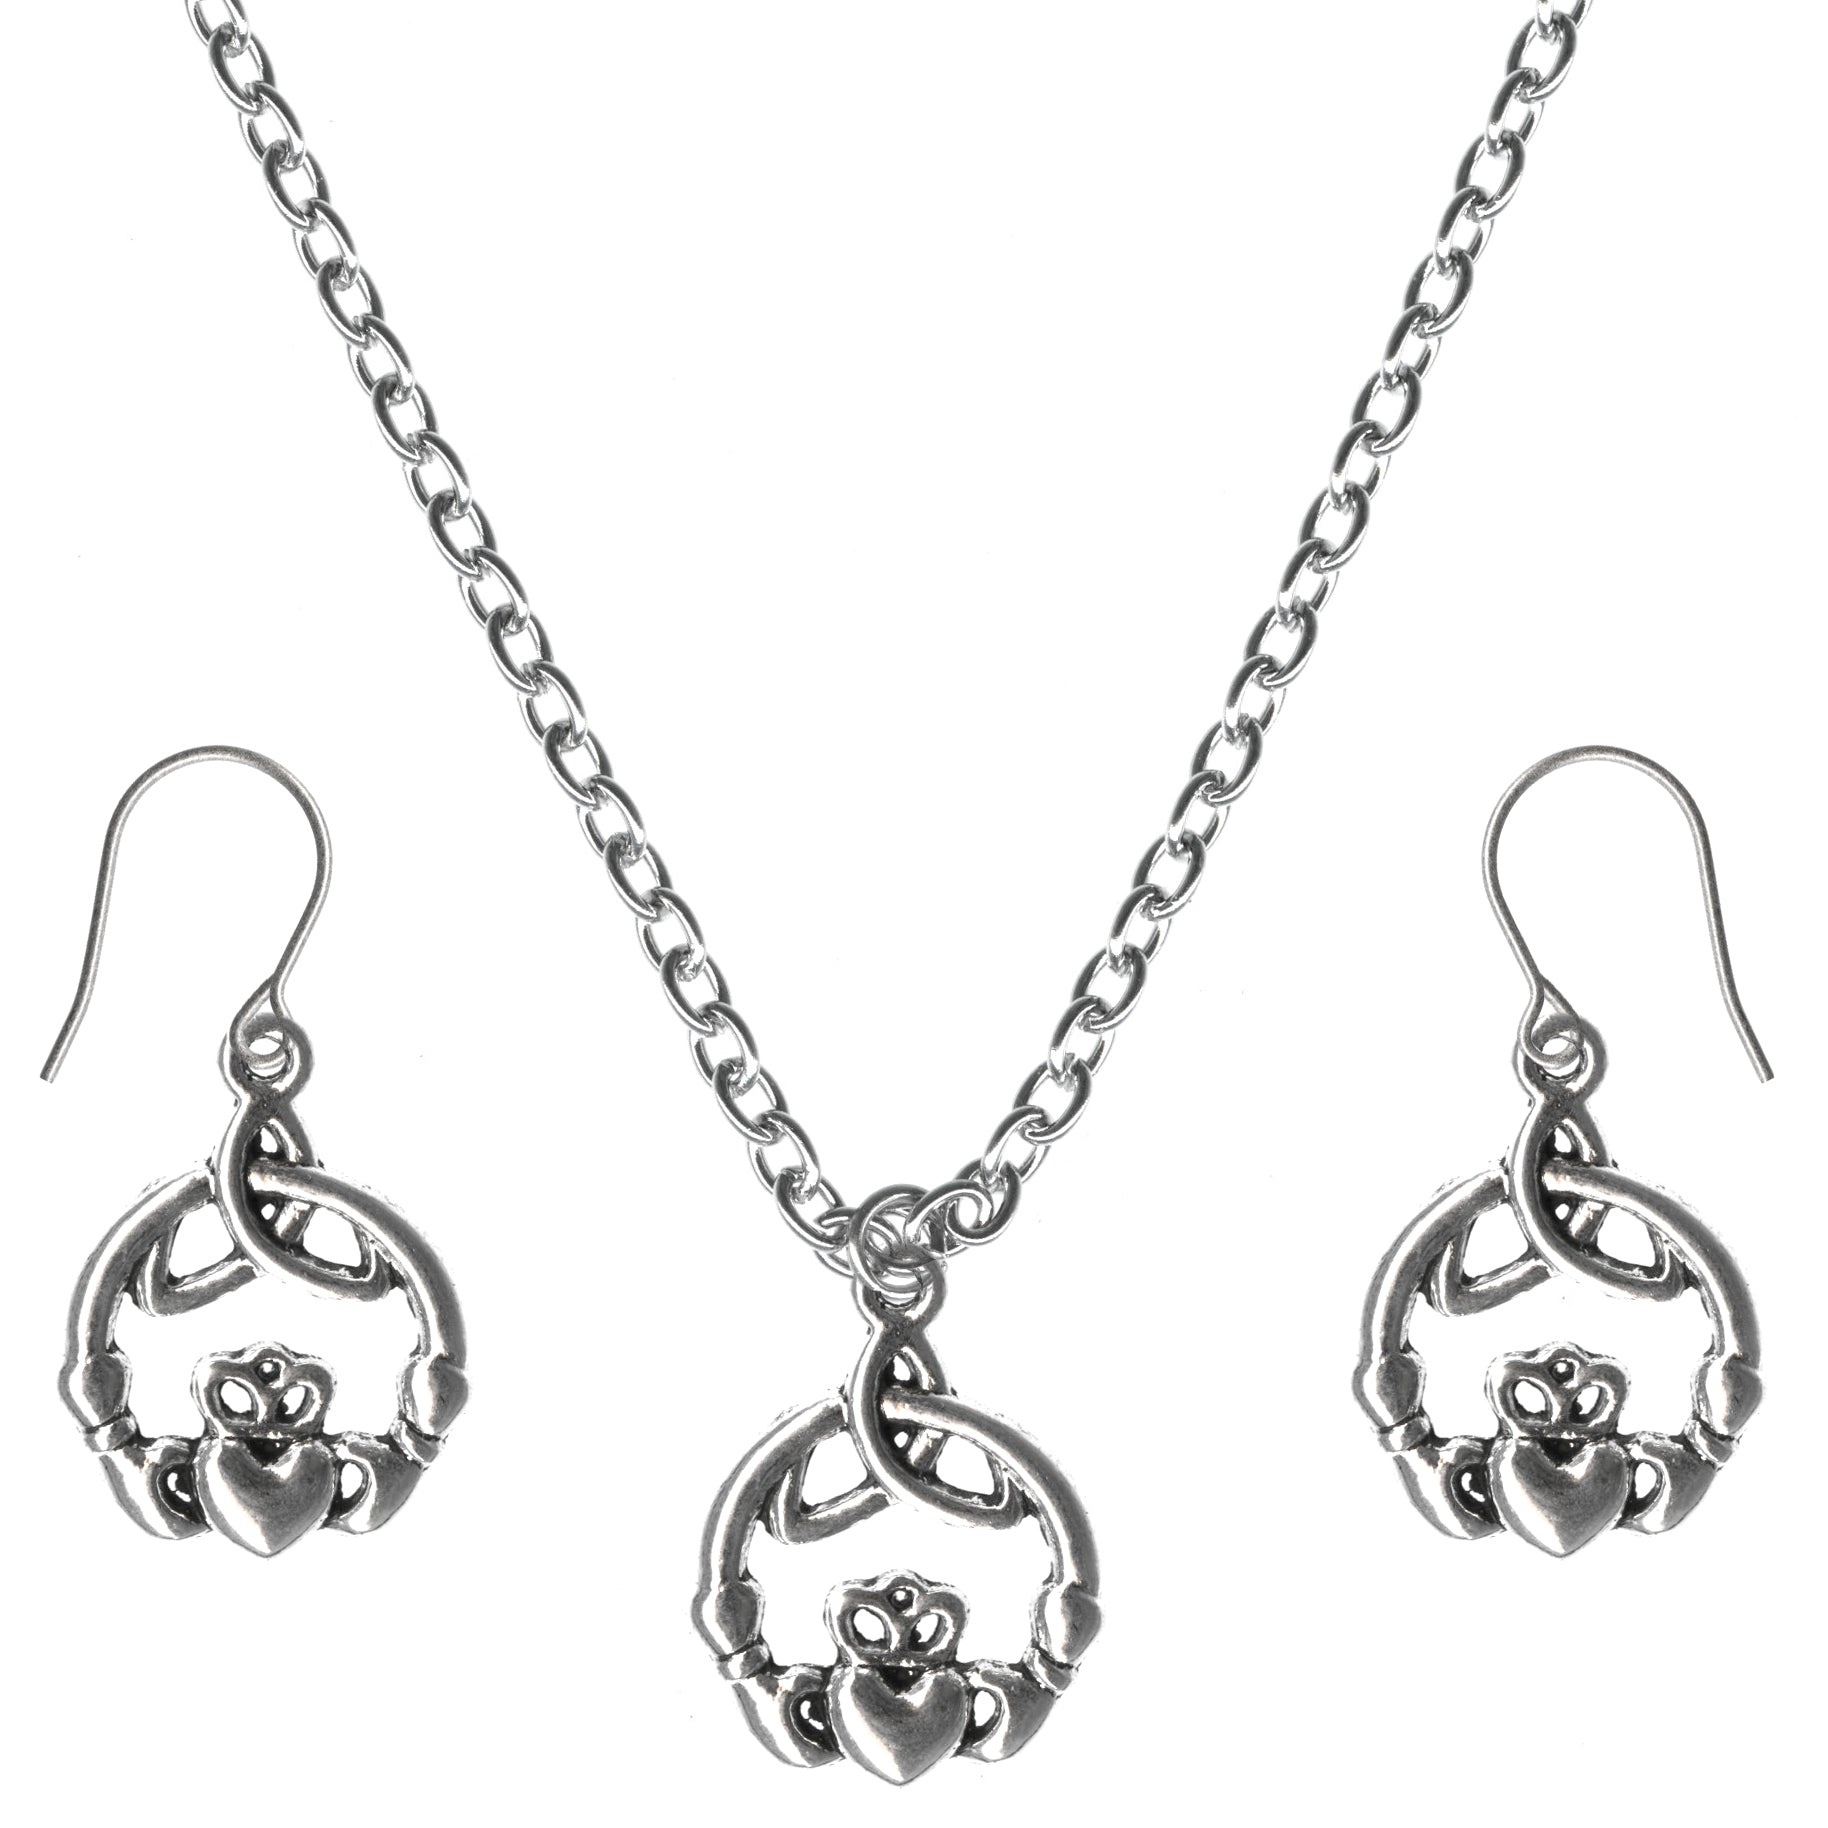 Irish Claddagh for Loyalty Friendship Charm Steel Chain Necklace and Hypoallergenic Titanium Earrings Set